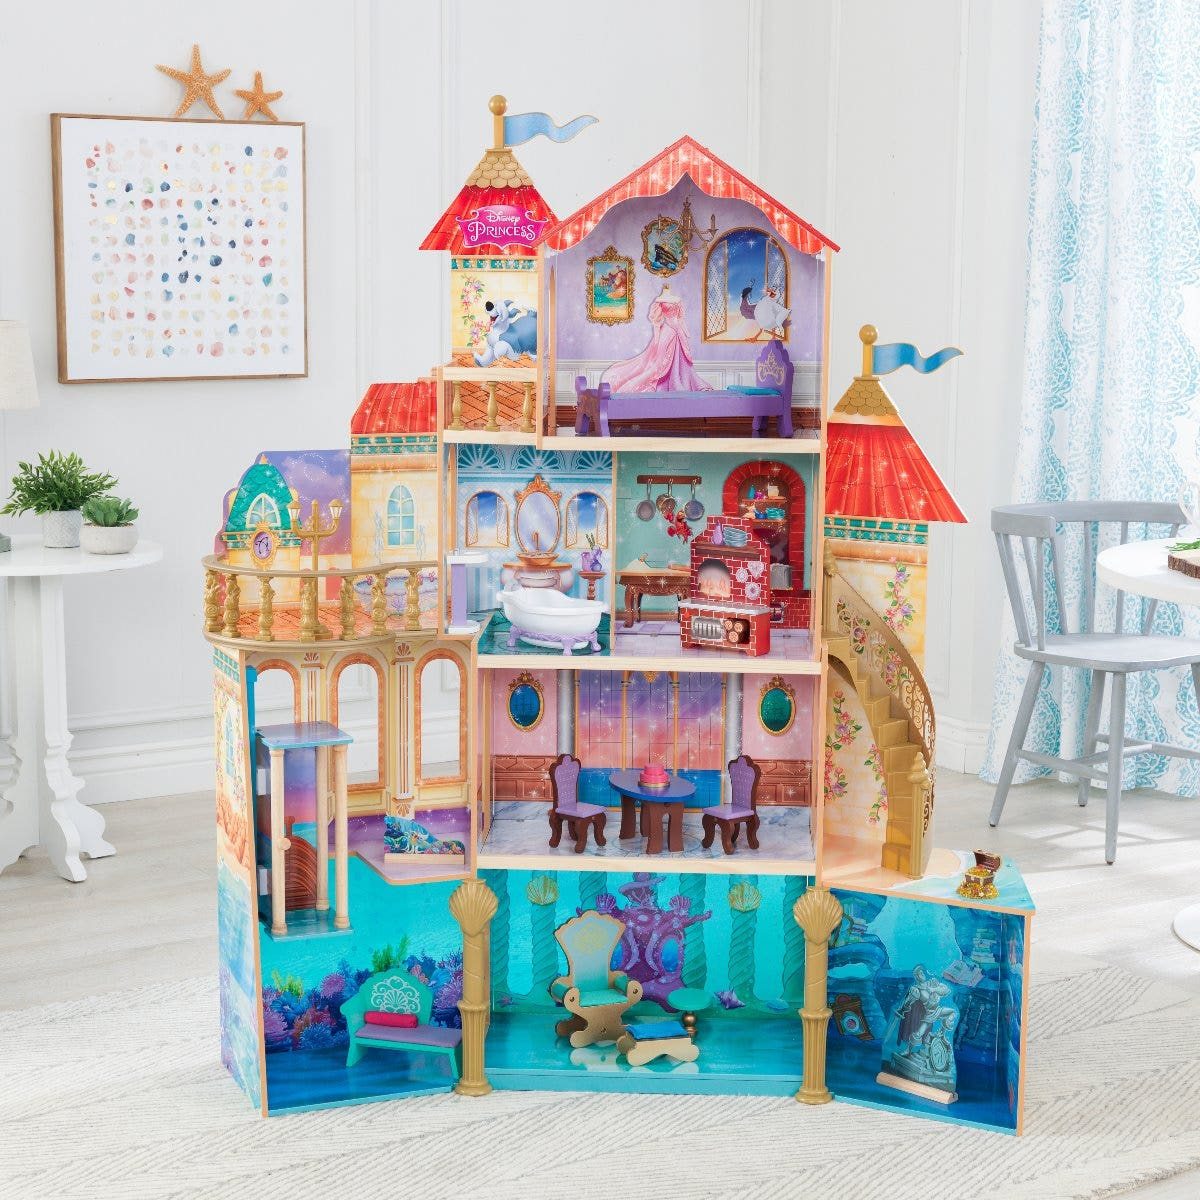 4 levels and 11 areas of play for dolls up to 12 inches